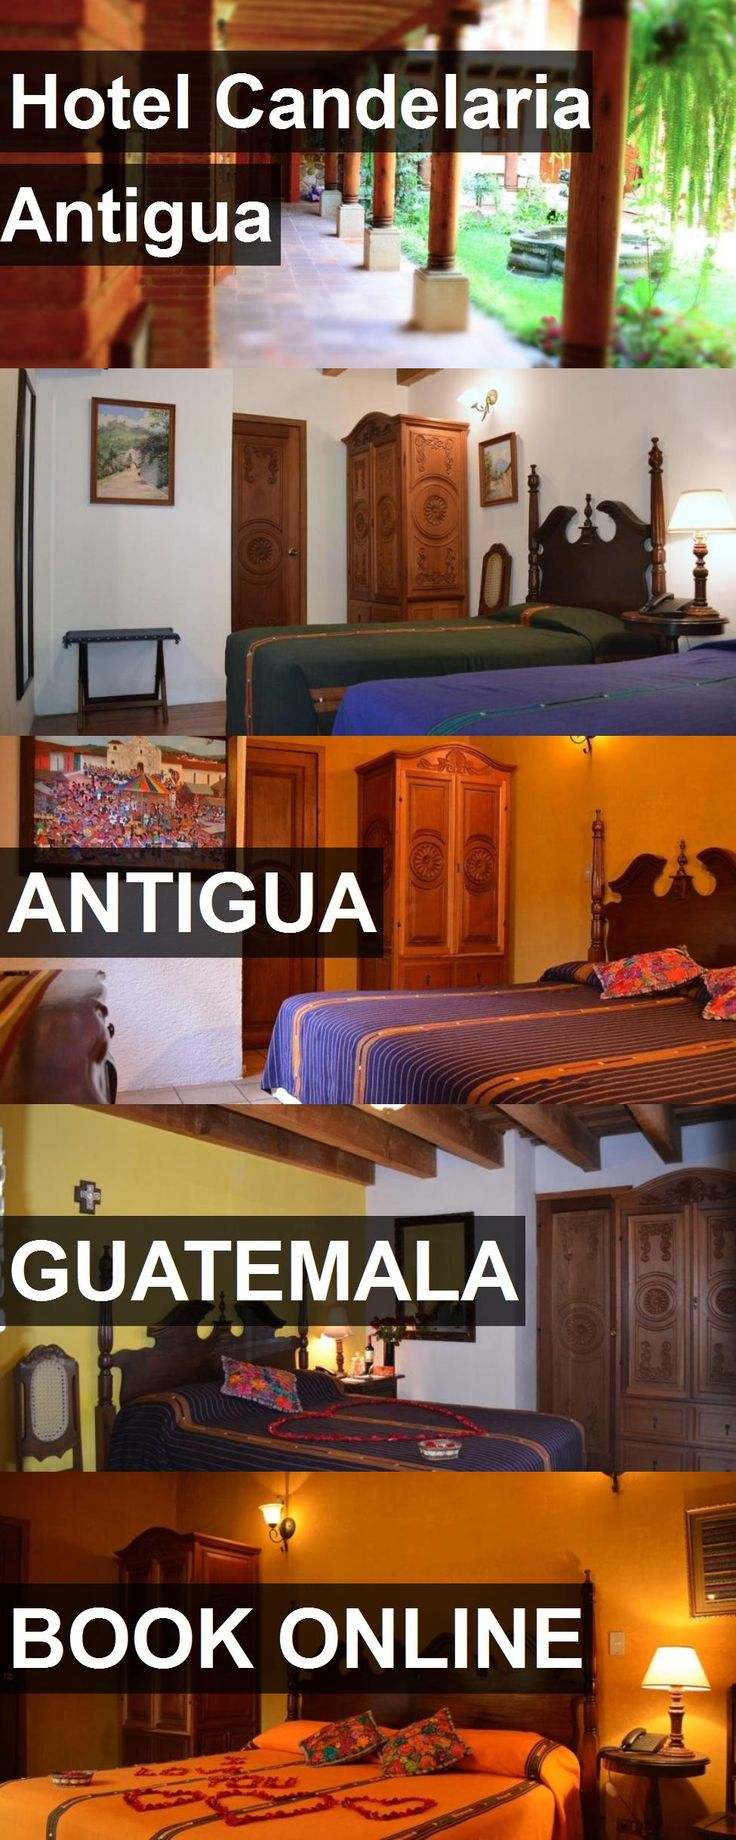 Hotel Candelaria Antigua in Antigua, Guatemala. For more information, photos, reviews and best prices please follow the link. #Guatemala #Antigua #travel #vacation #hotel